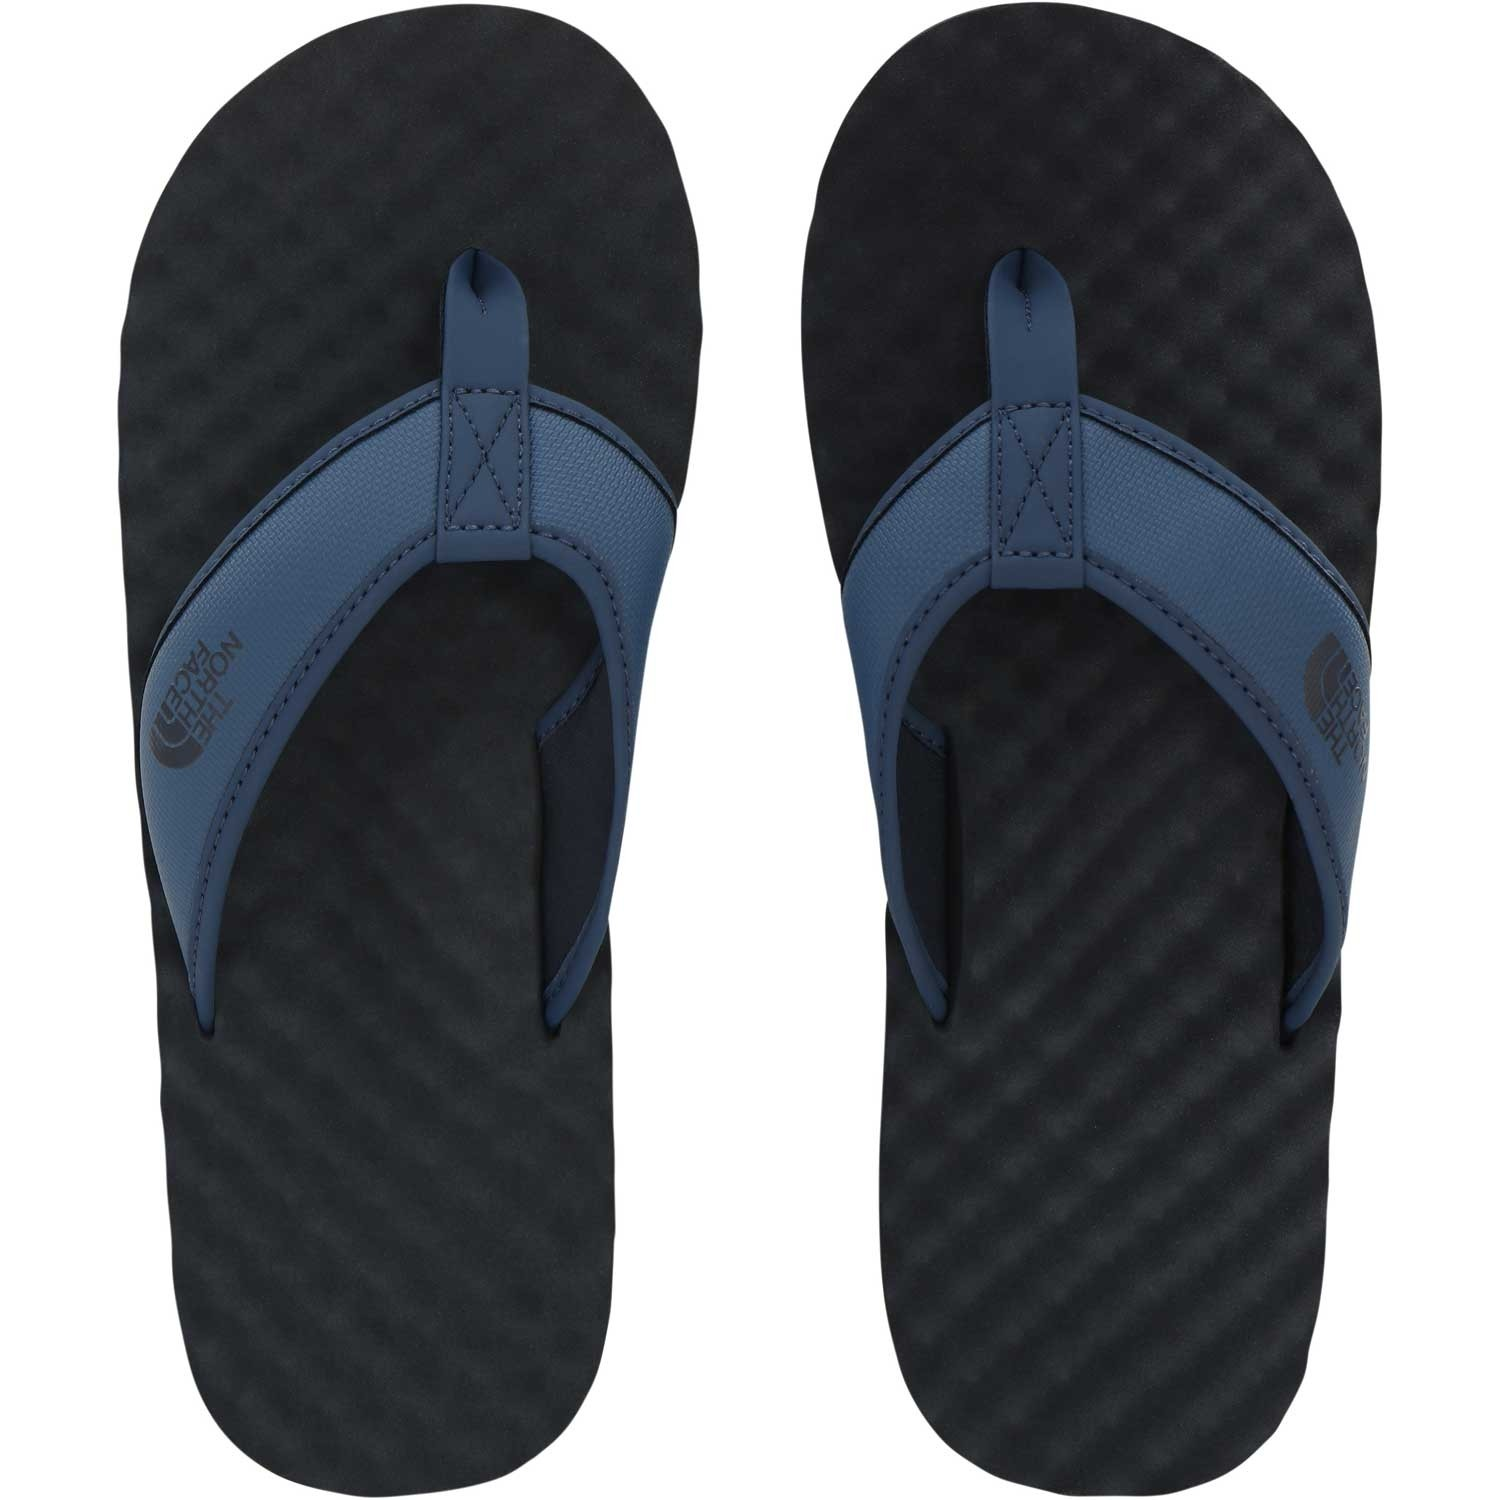 The North Face Base Camp Flip Flop - Men's - Shady Blue/Urban Navy